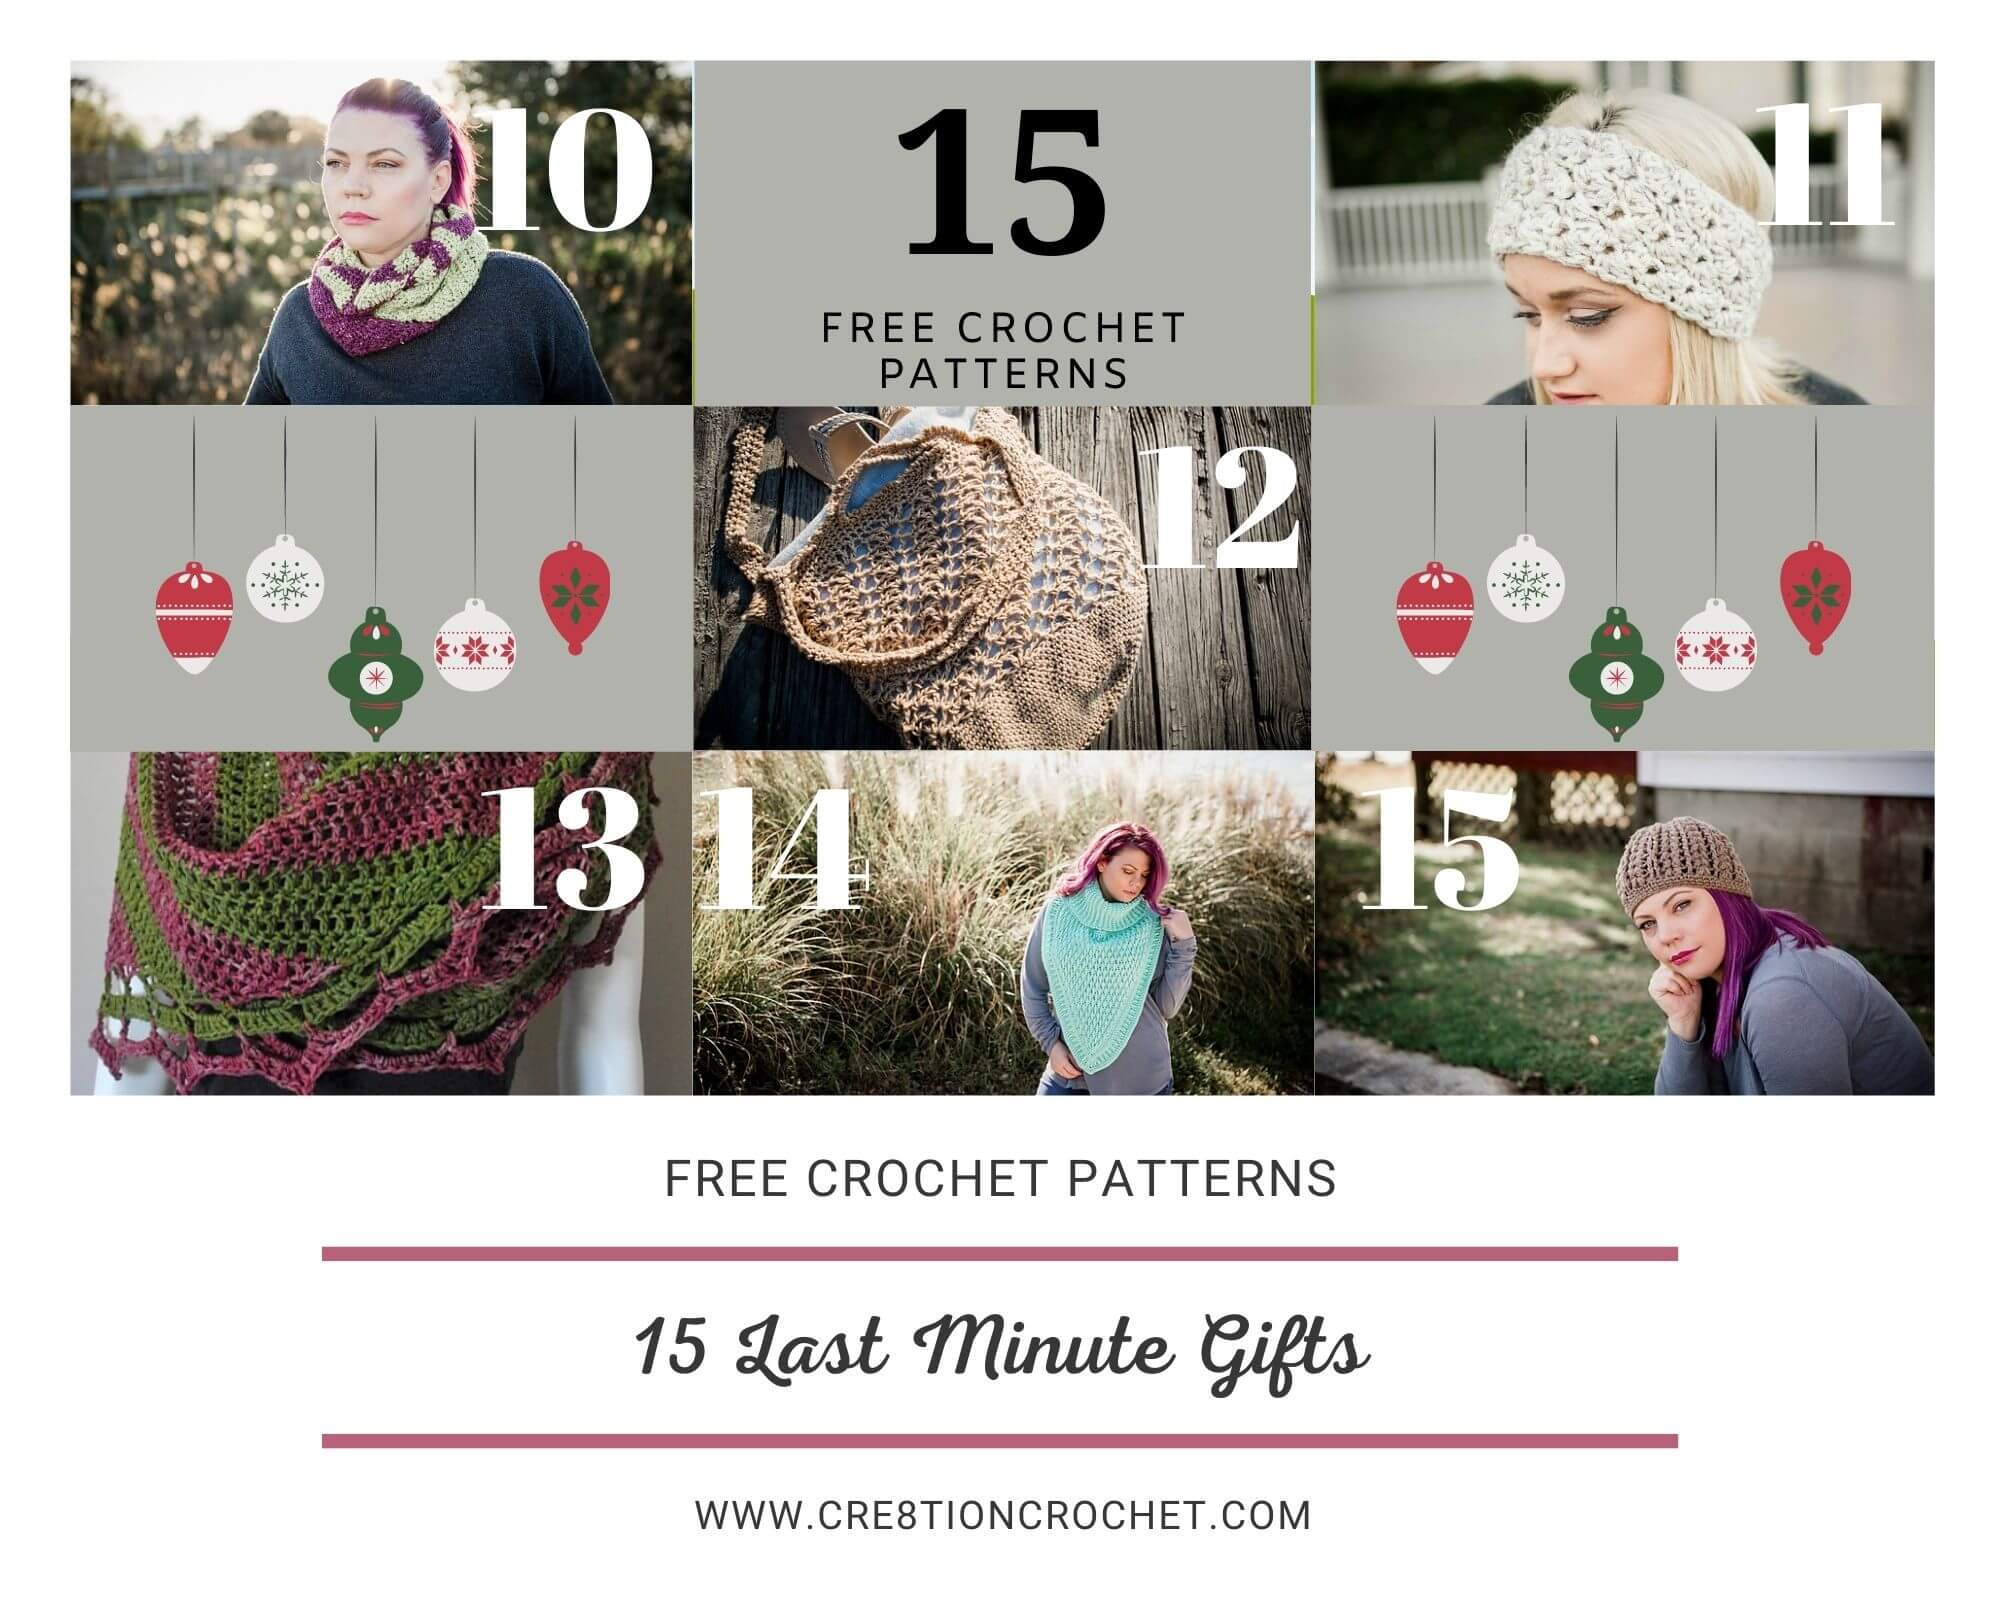 15 Last Minute Gifts - Free Crochet Patterns 7